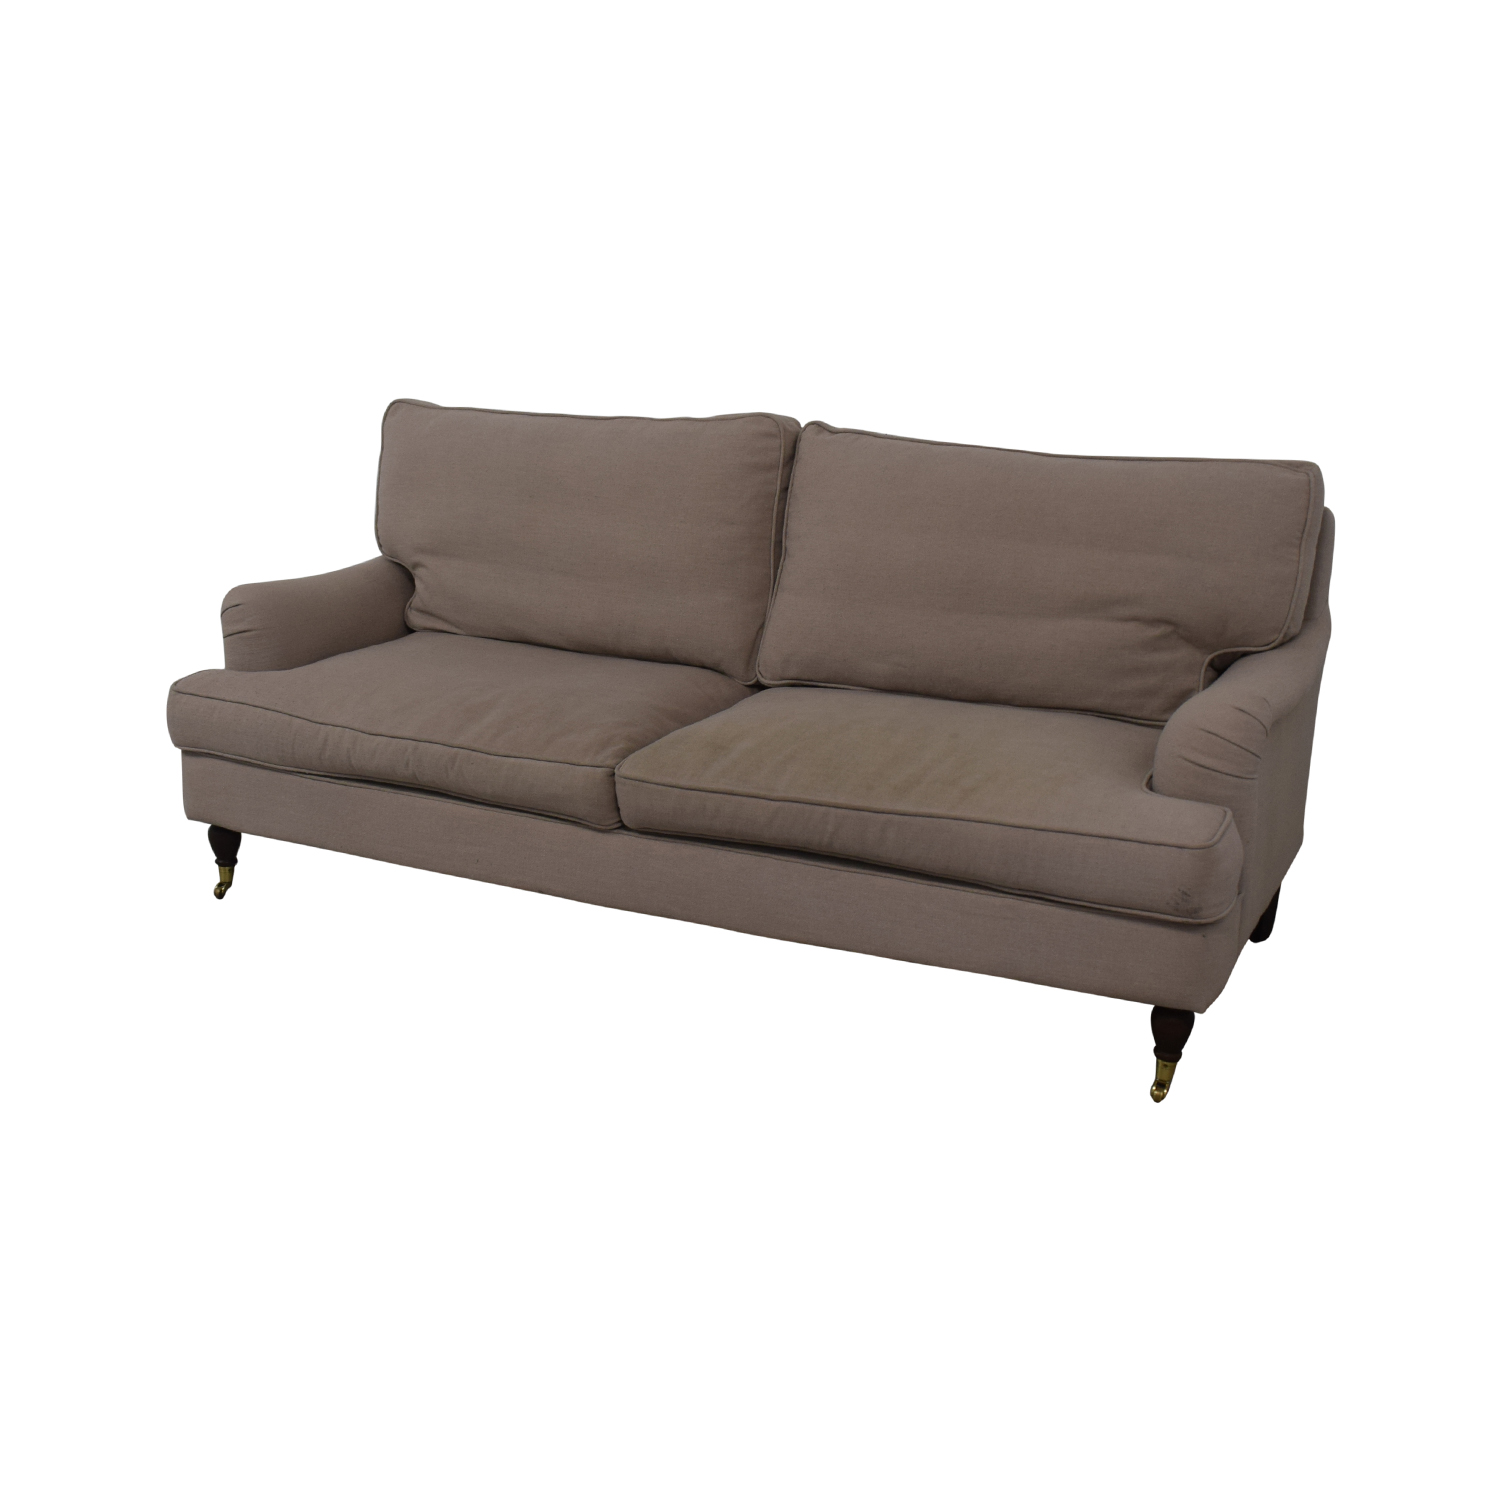 Safavieh Roll Arm Sofa Safavieh